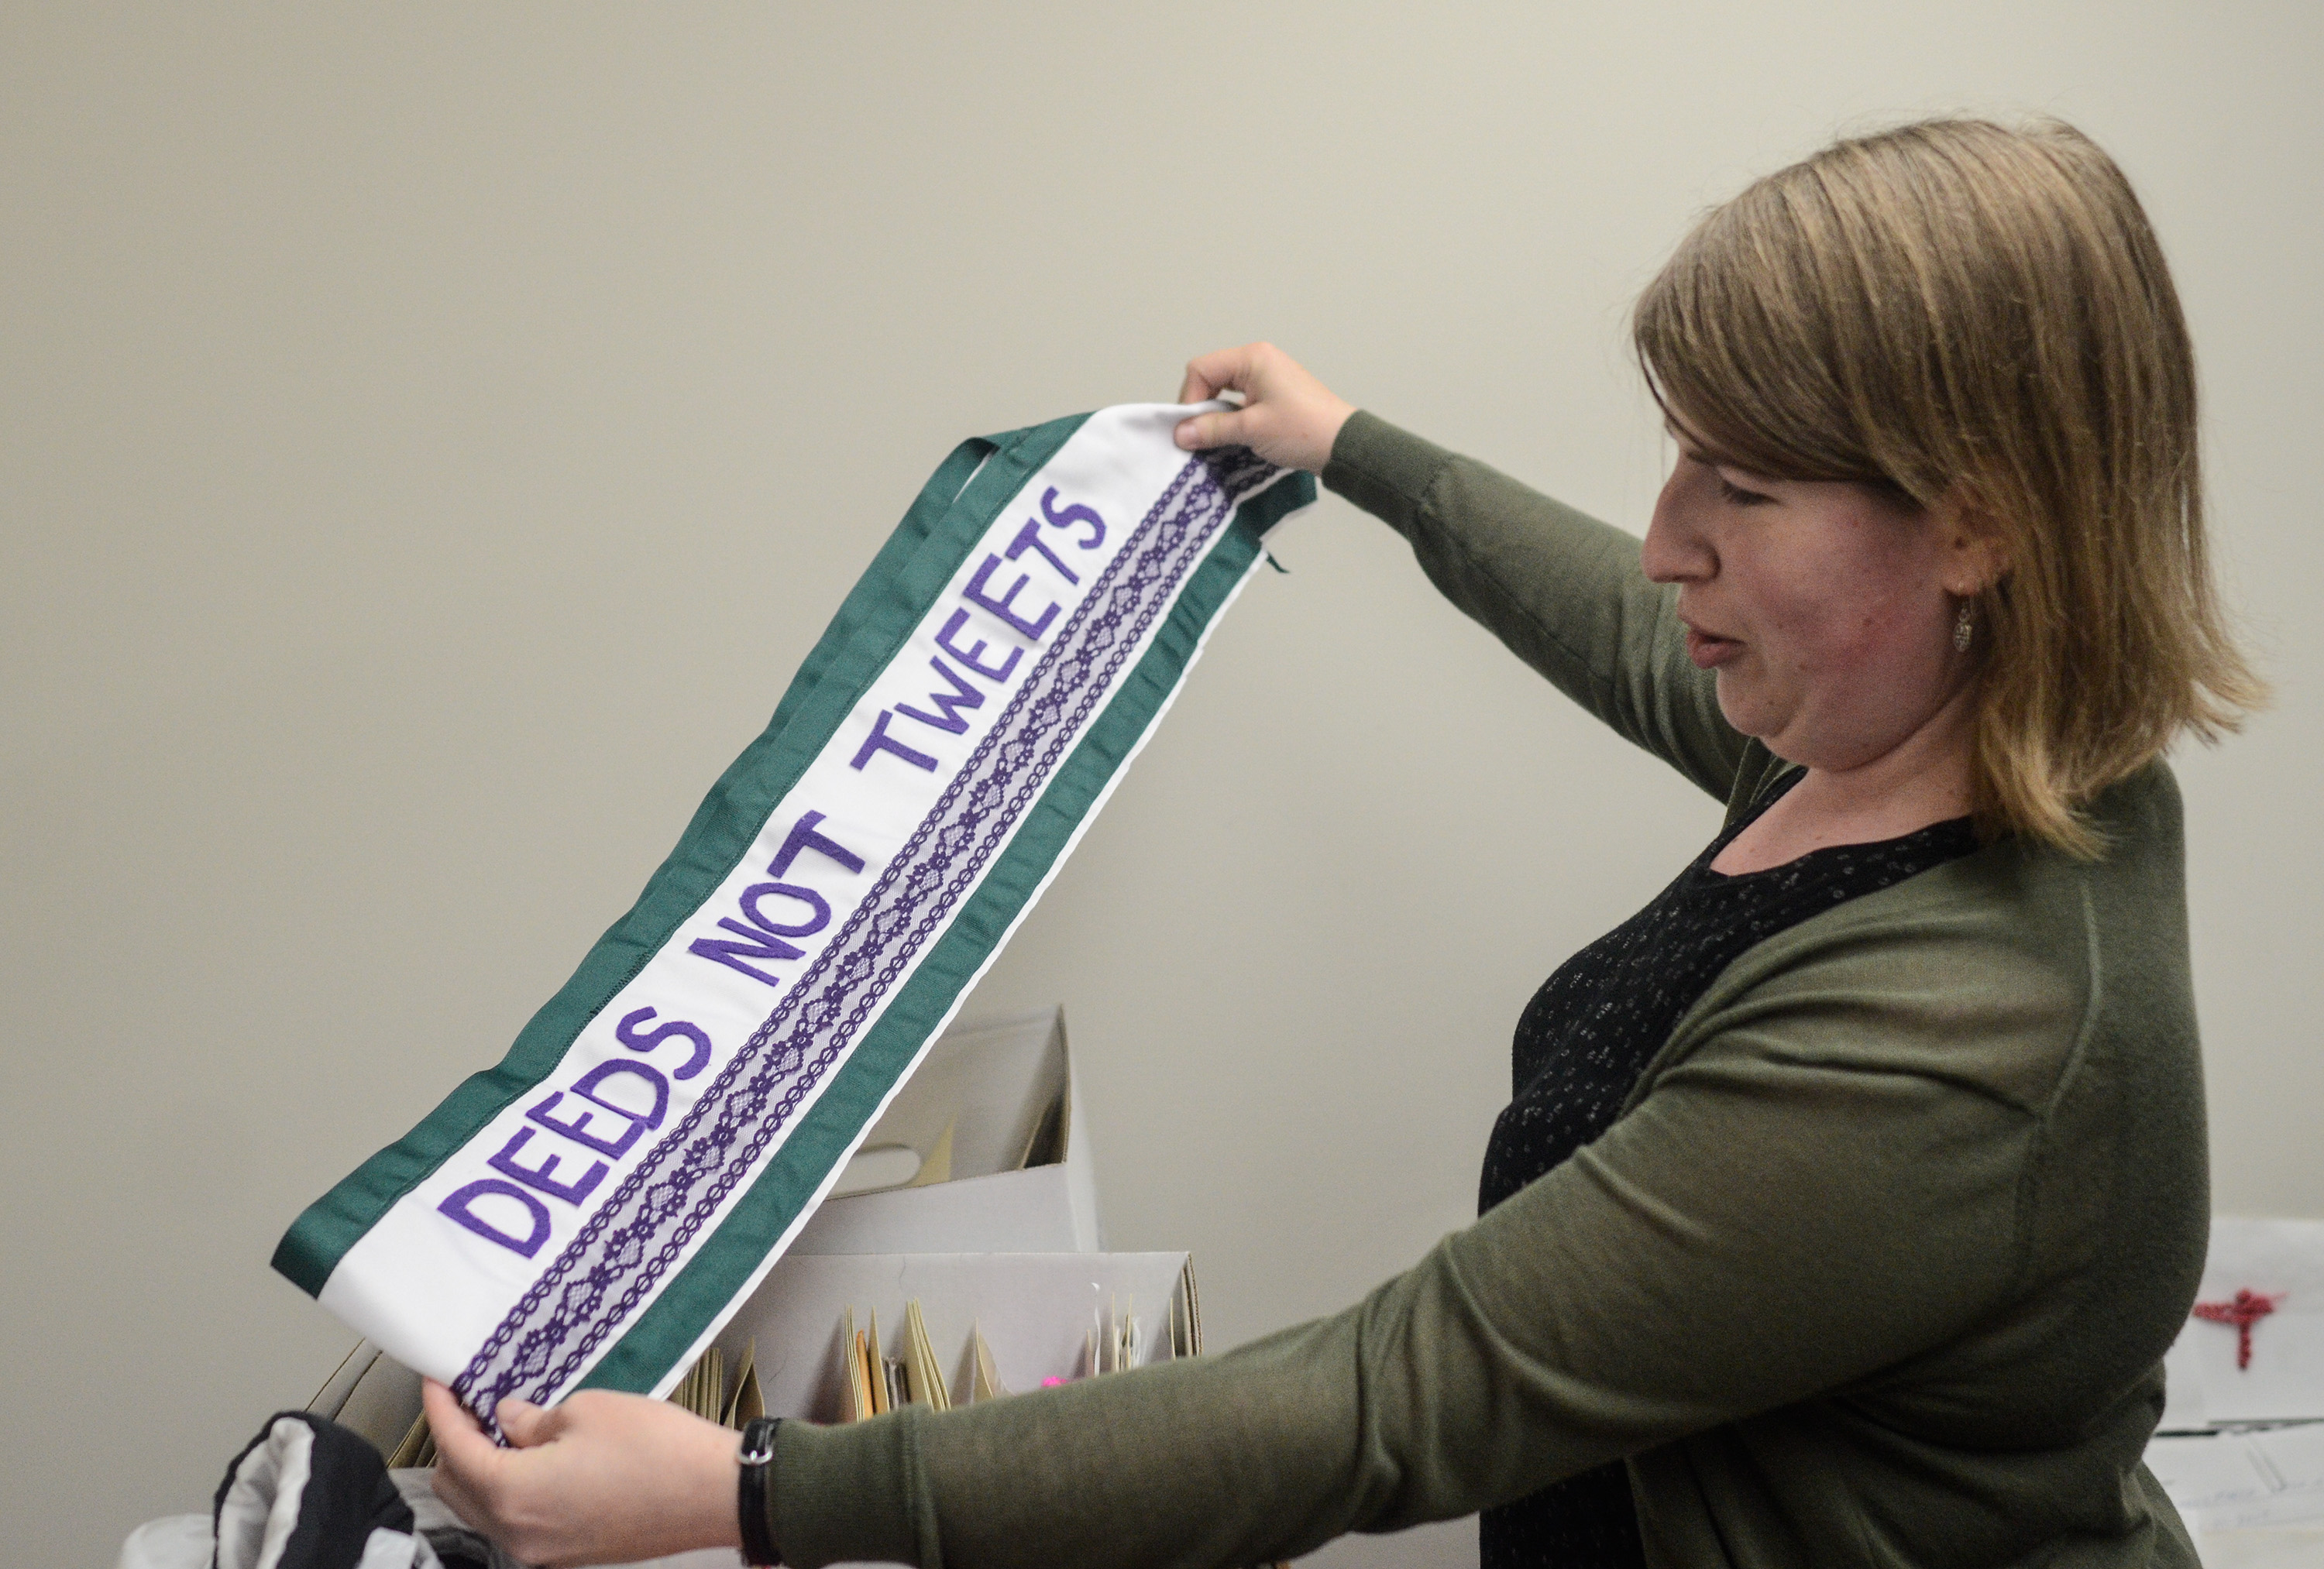 """Image: Catherine Grandgeorge holds up a green, white, and purple sash that says """"Deeds Not Tweets"""" with both arms. Image by William Camargo."""